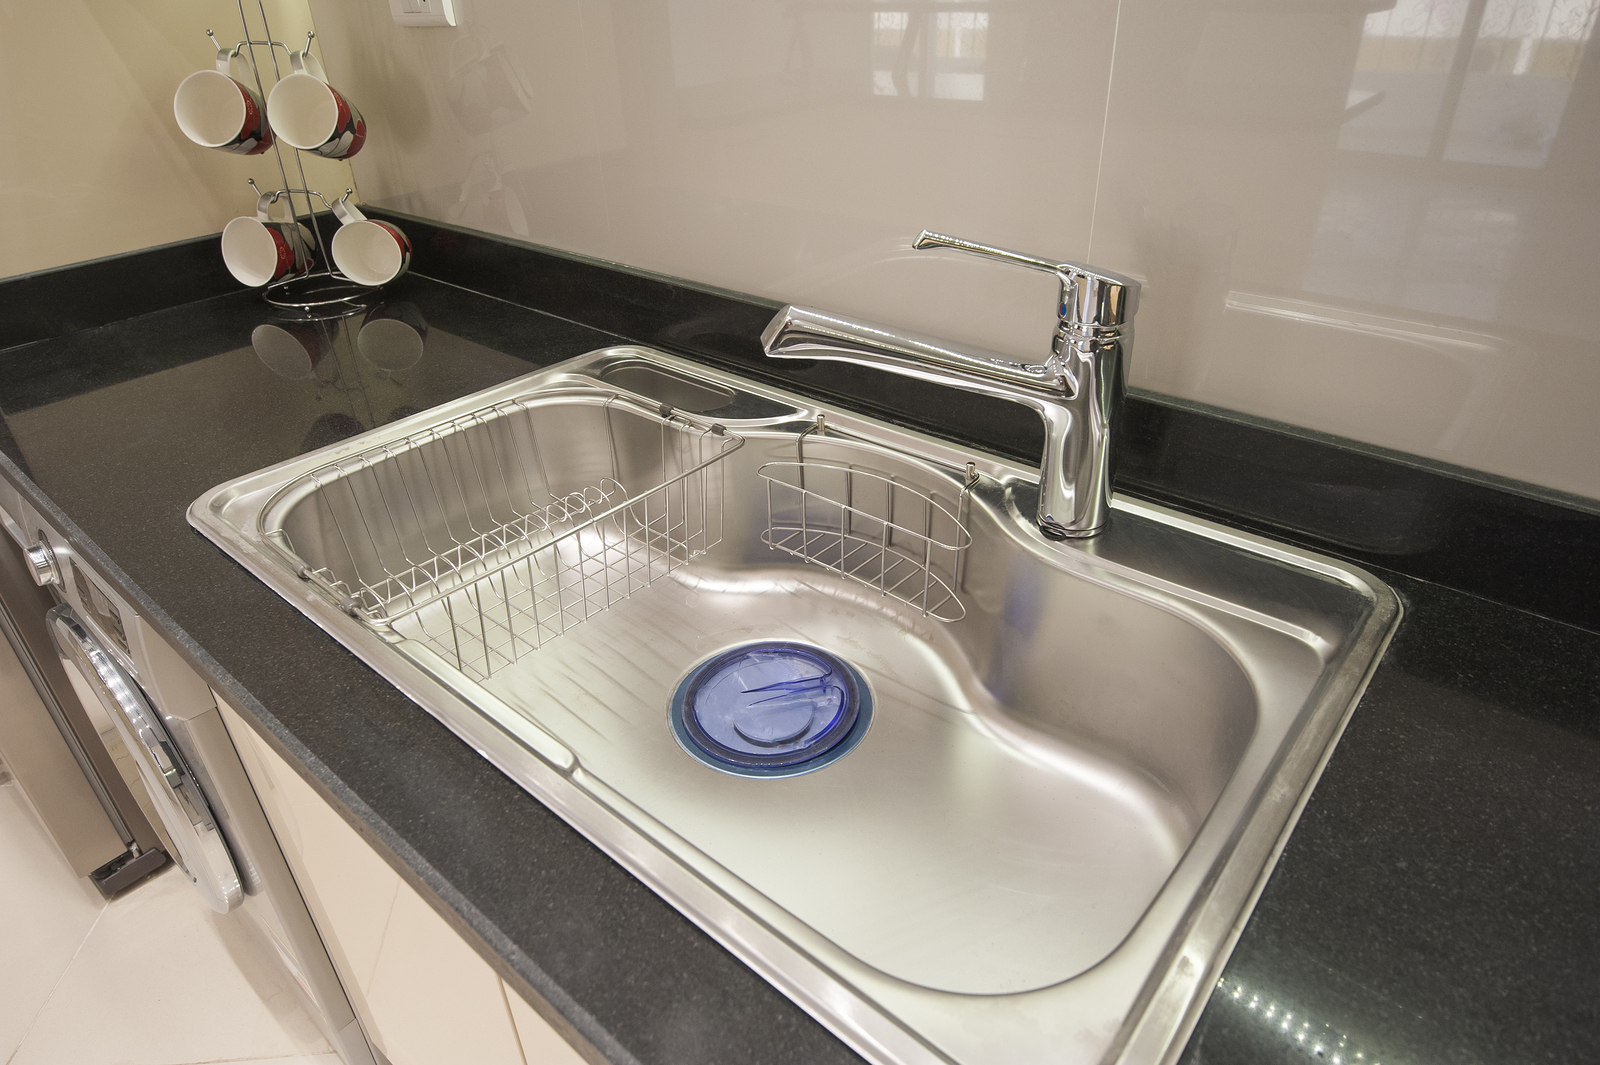 Interior design decor of kitchen in luxury apartment with sink and faucet